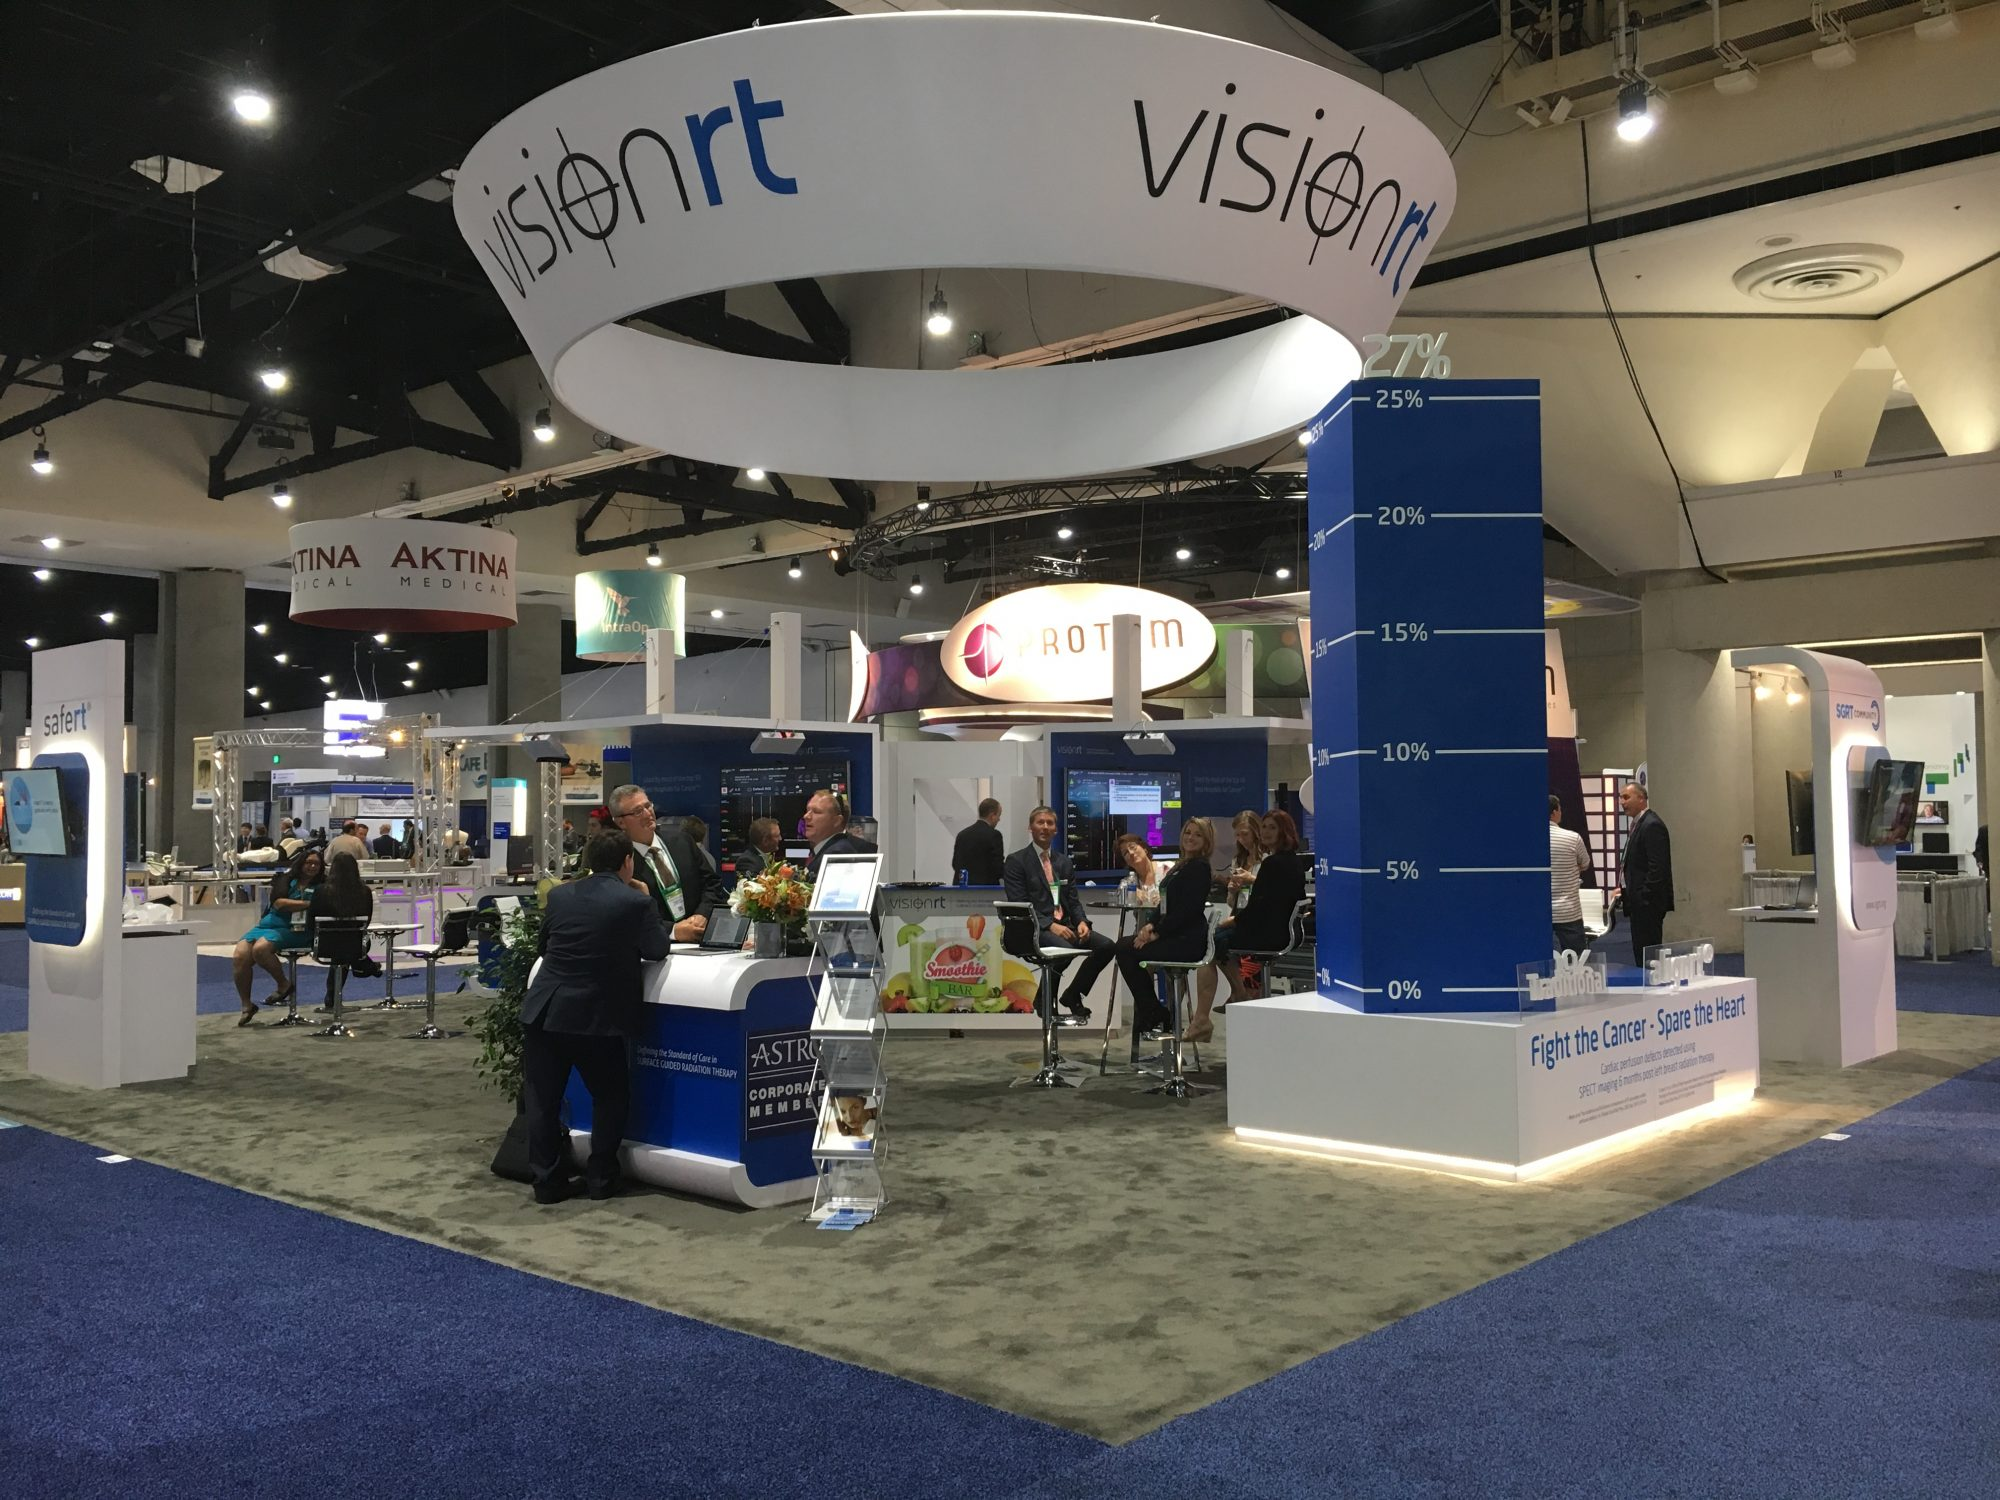 Vision RT to share new clinical data at the ASTRO 2016 Annual Meeting